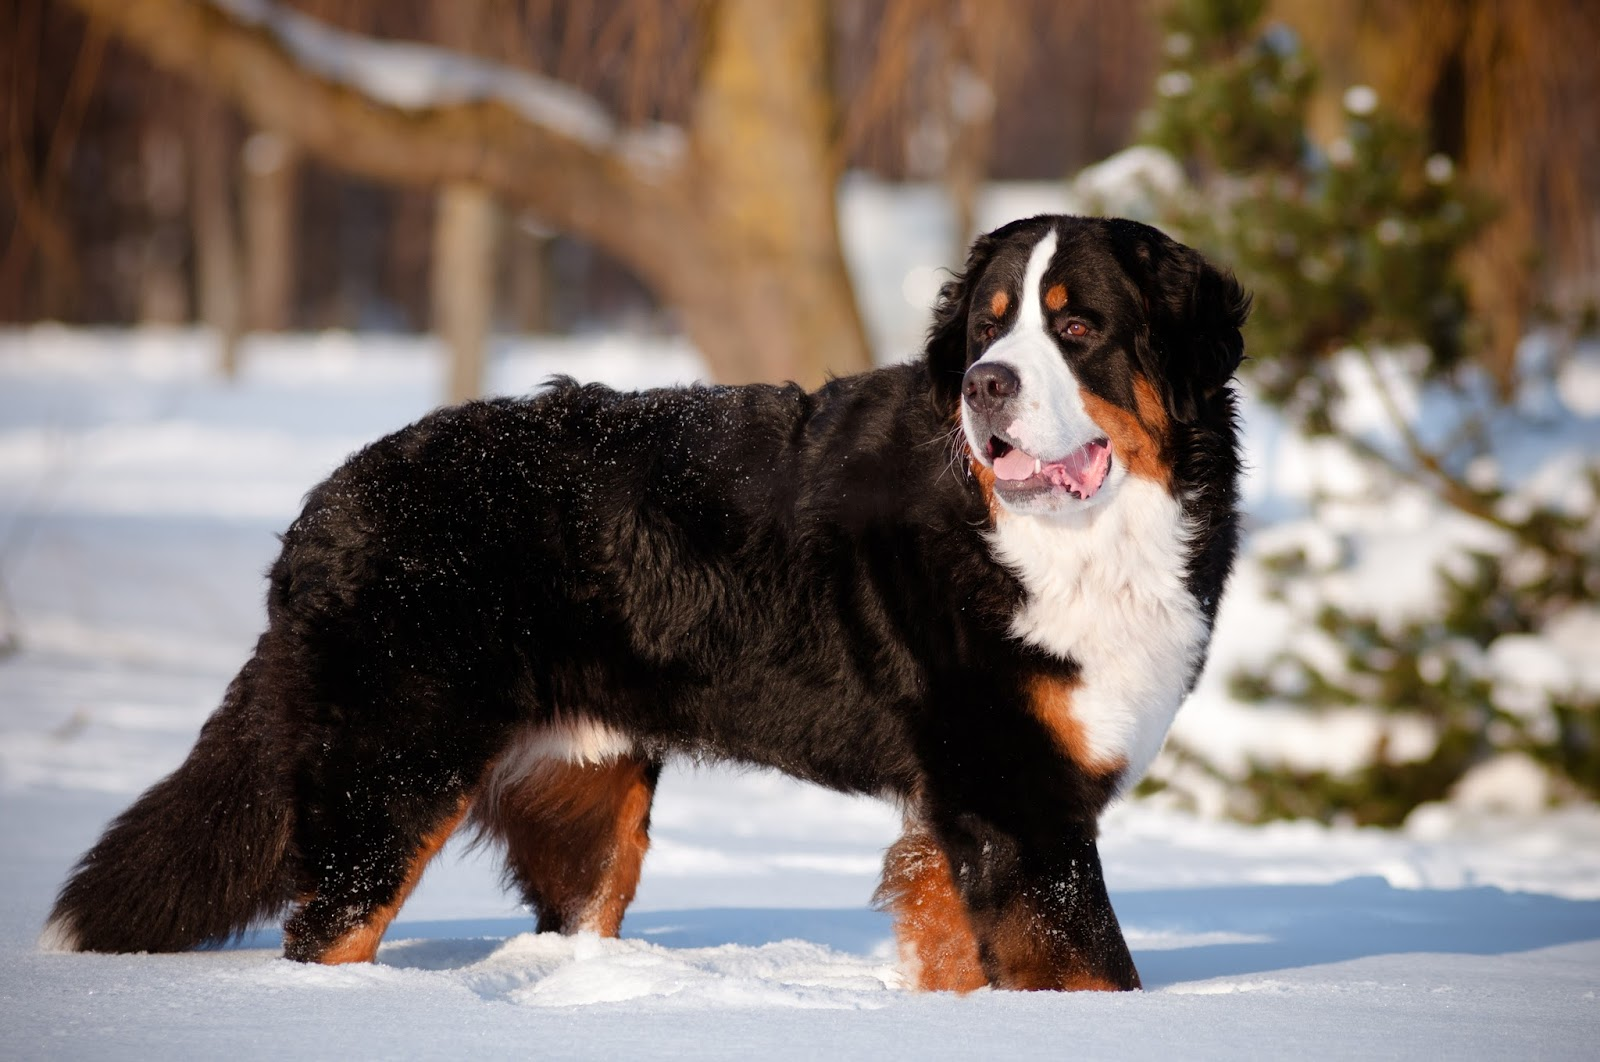 Petland Naperville: Bernese Mountain Dog—You Don't Have to